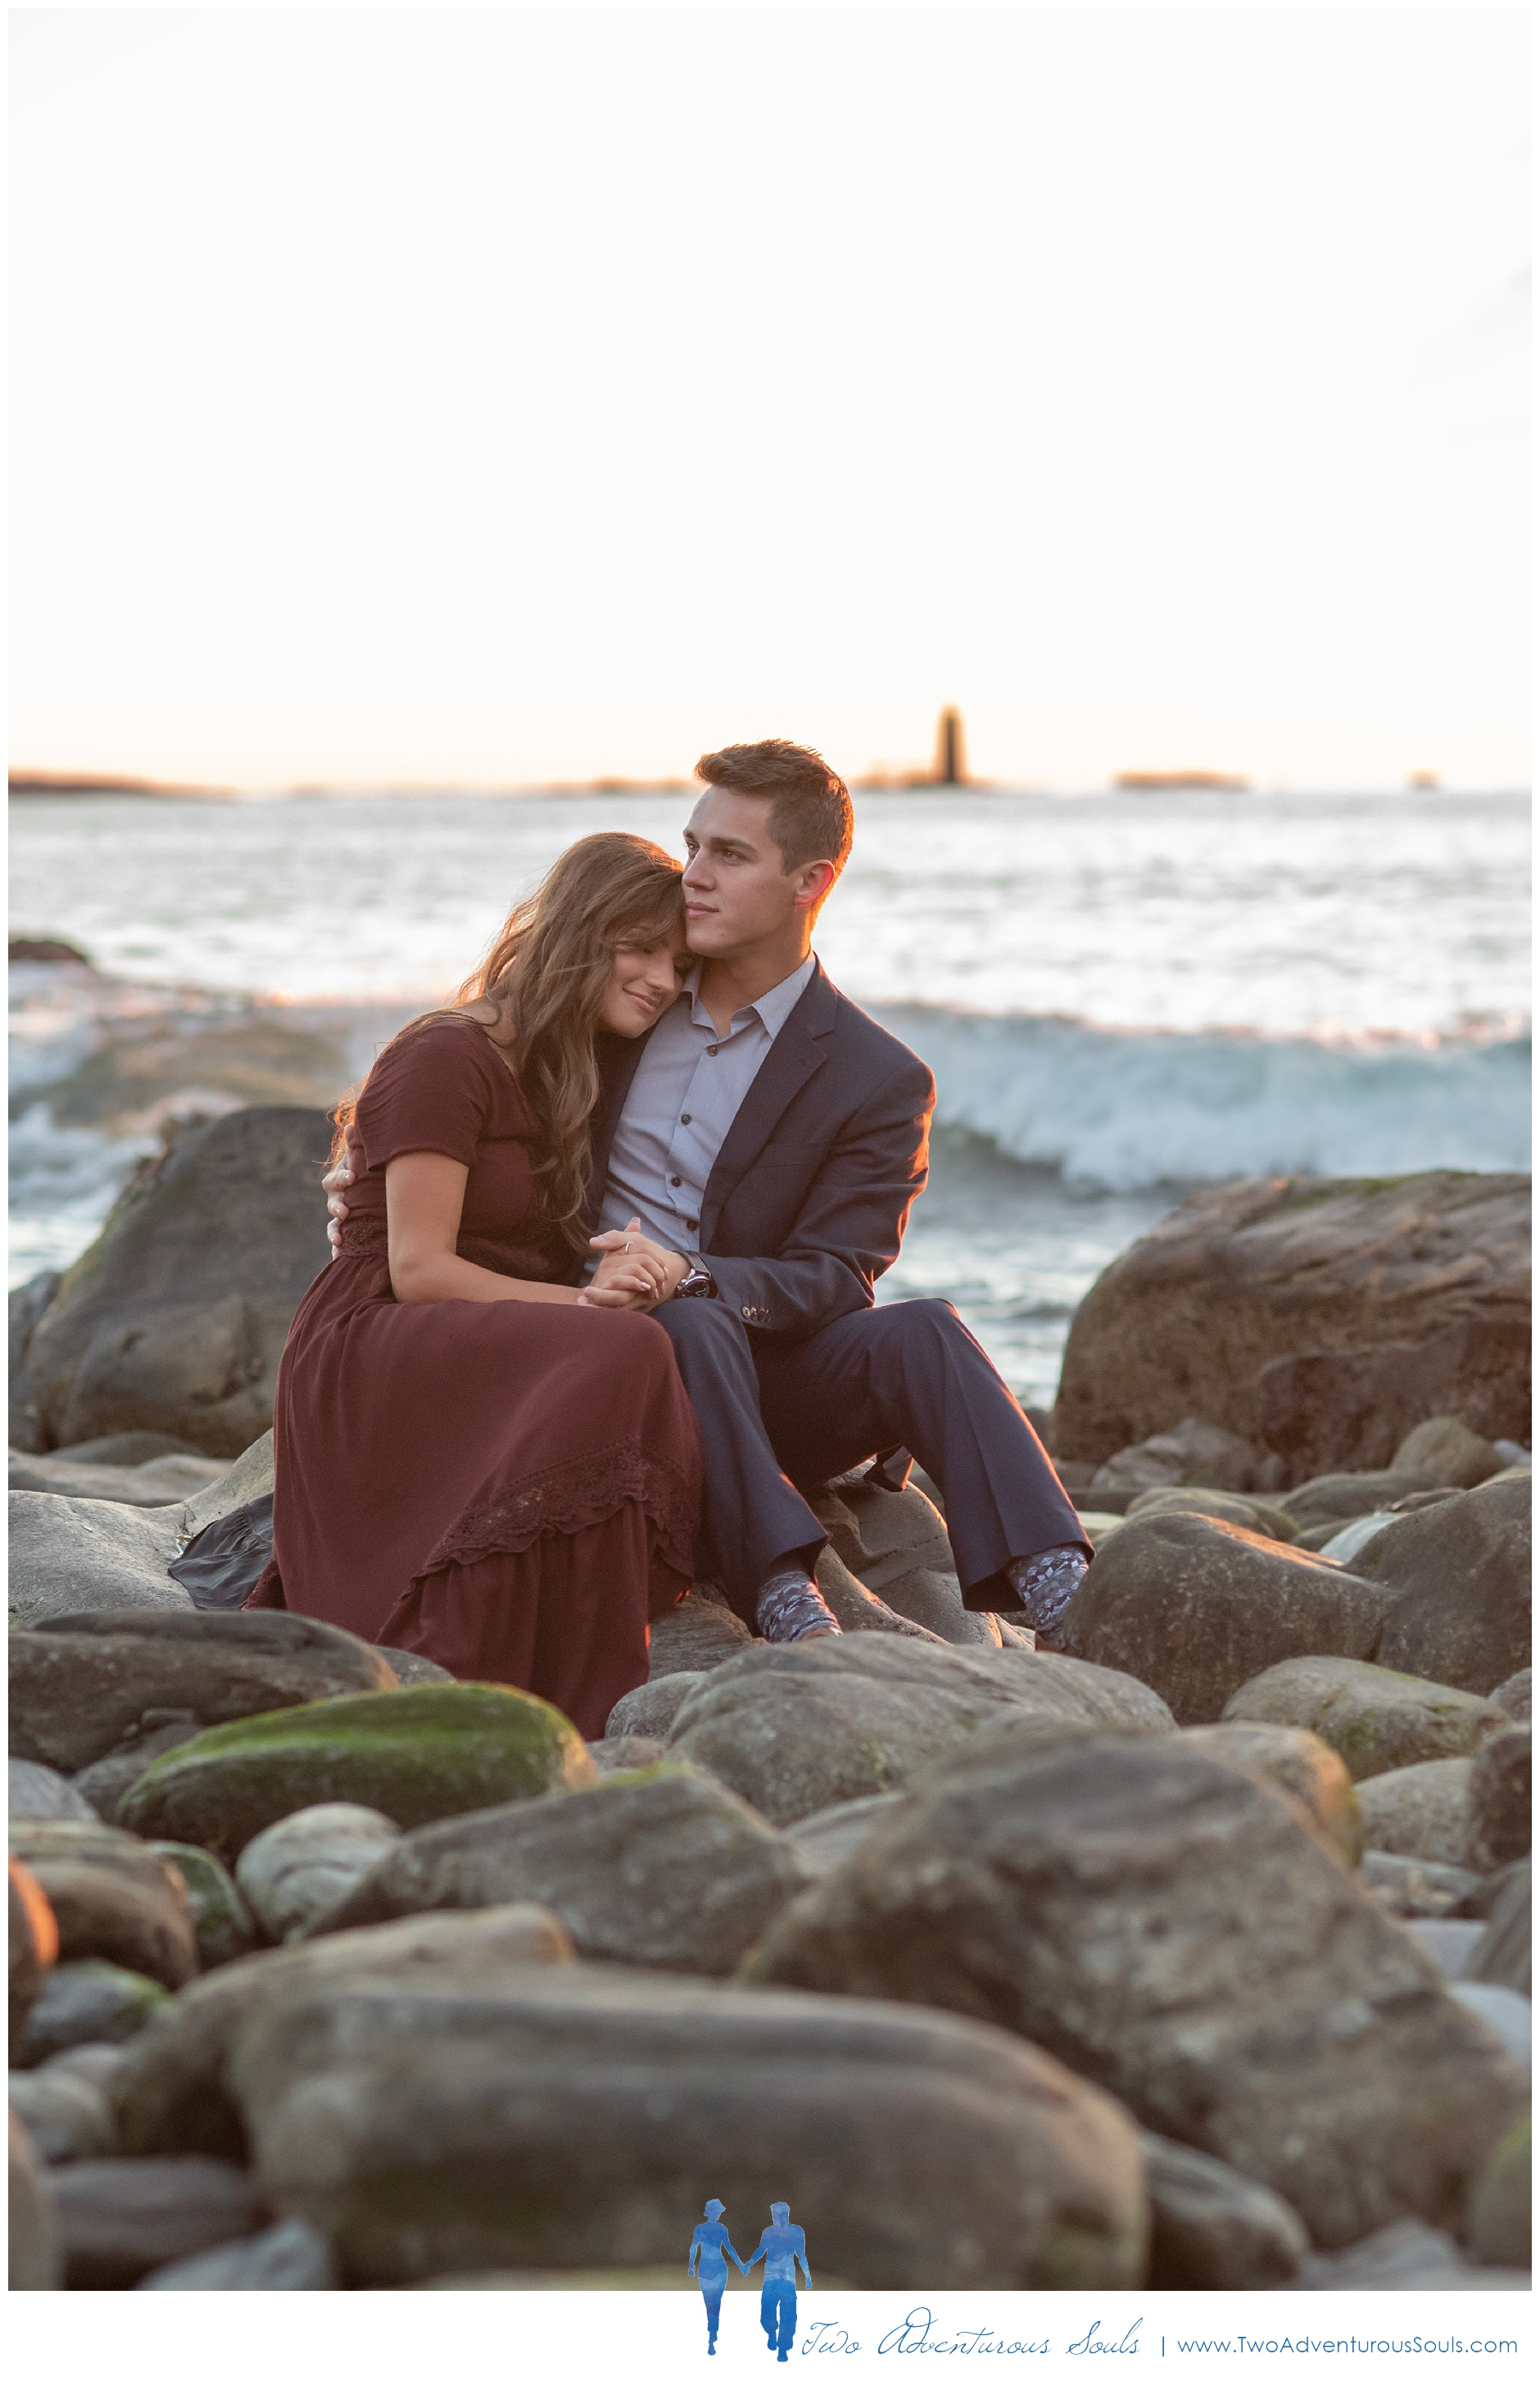 Carlin Bates and Evan Stewart Engagement Photos, Maine Wedding Photographers, Destination Wedding Photographers, Two Adventurous Souls_0007.jpg